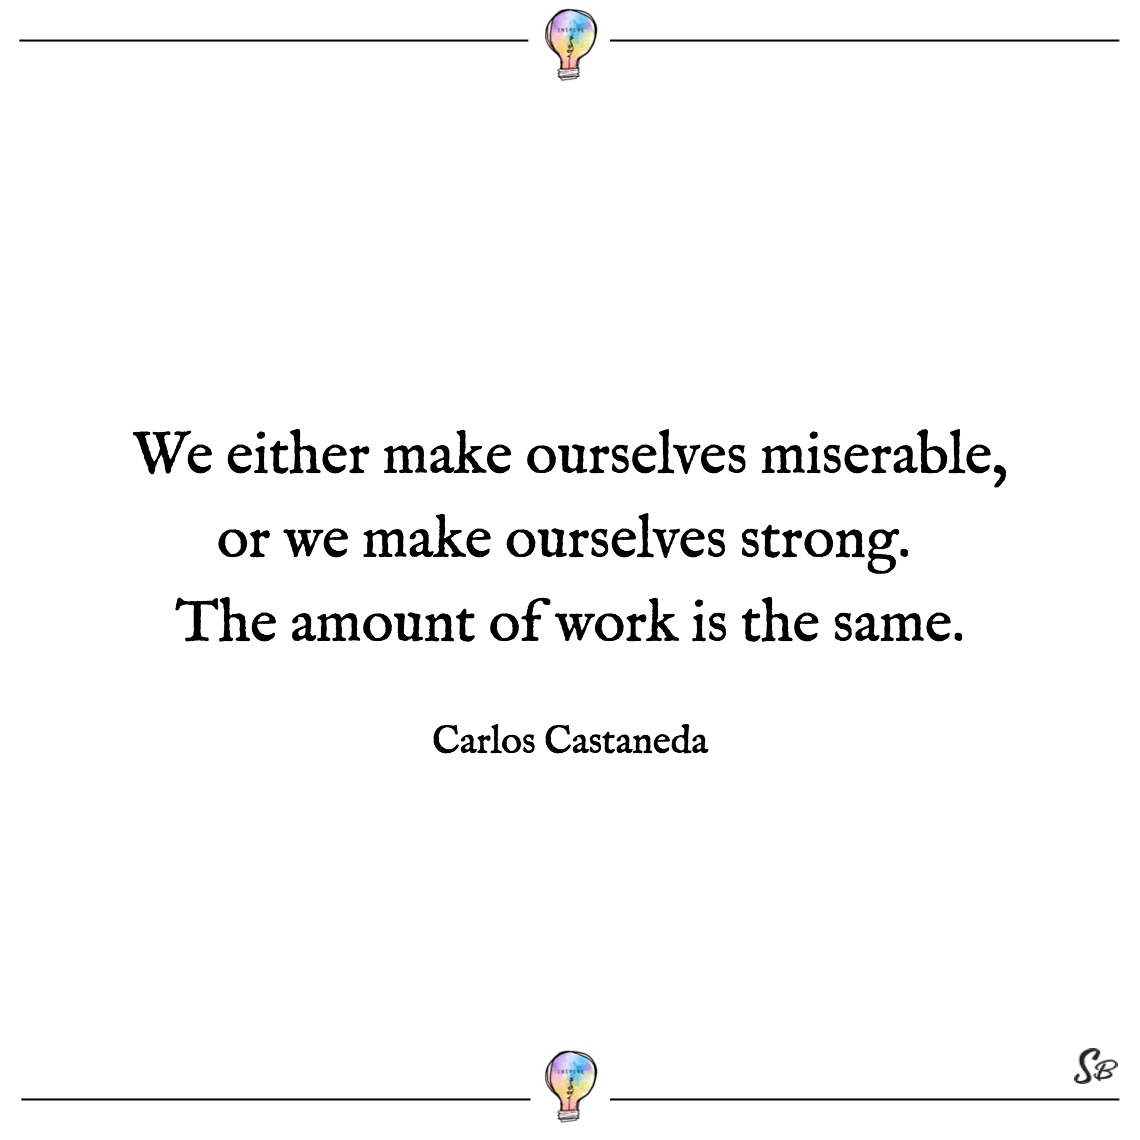 We either make ourselves miserable, or we make ourselves strong. the amount of work is the same. carlos castaneda